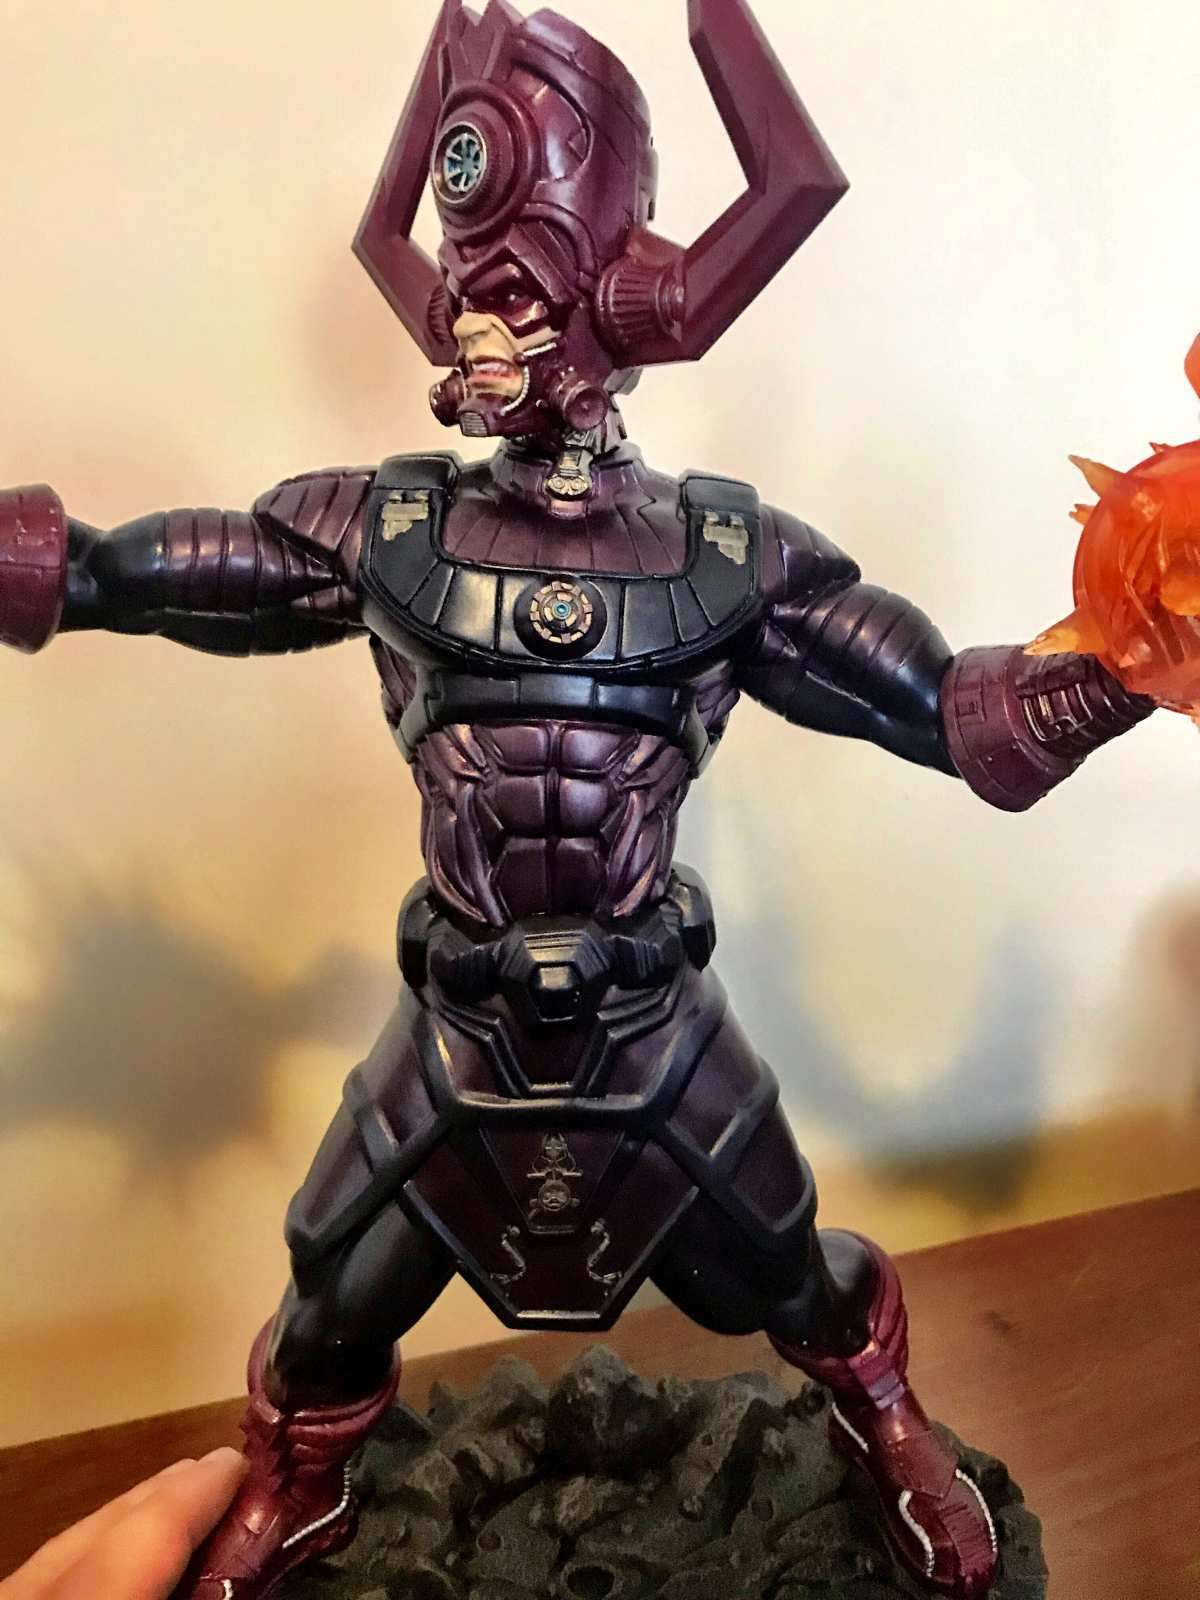 Marvel Heroclix Galactus - Devourer of Worlds Premium Colossal Figure 003